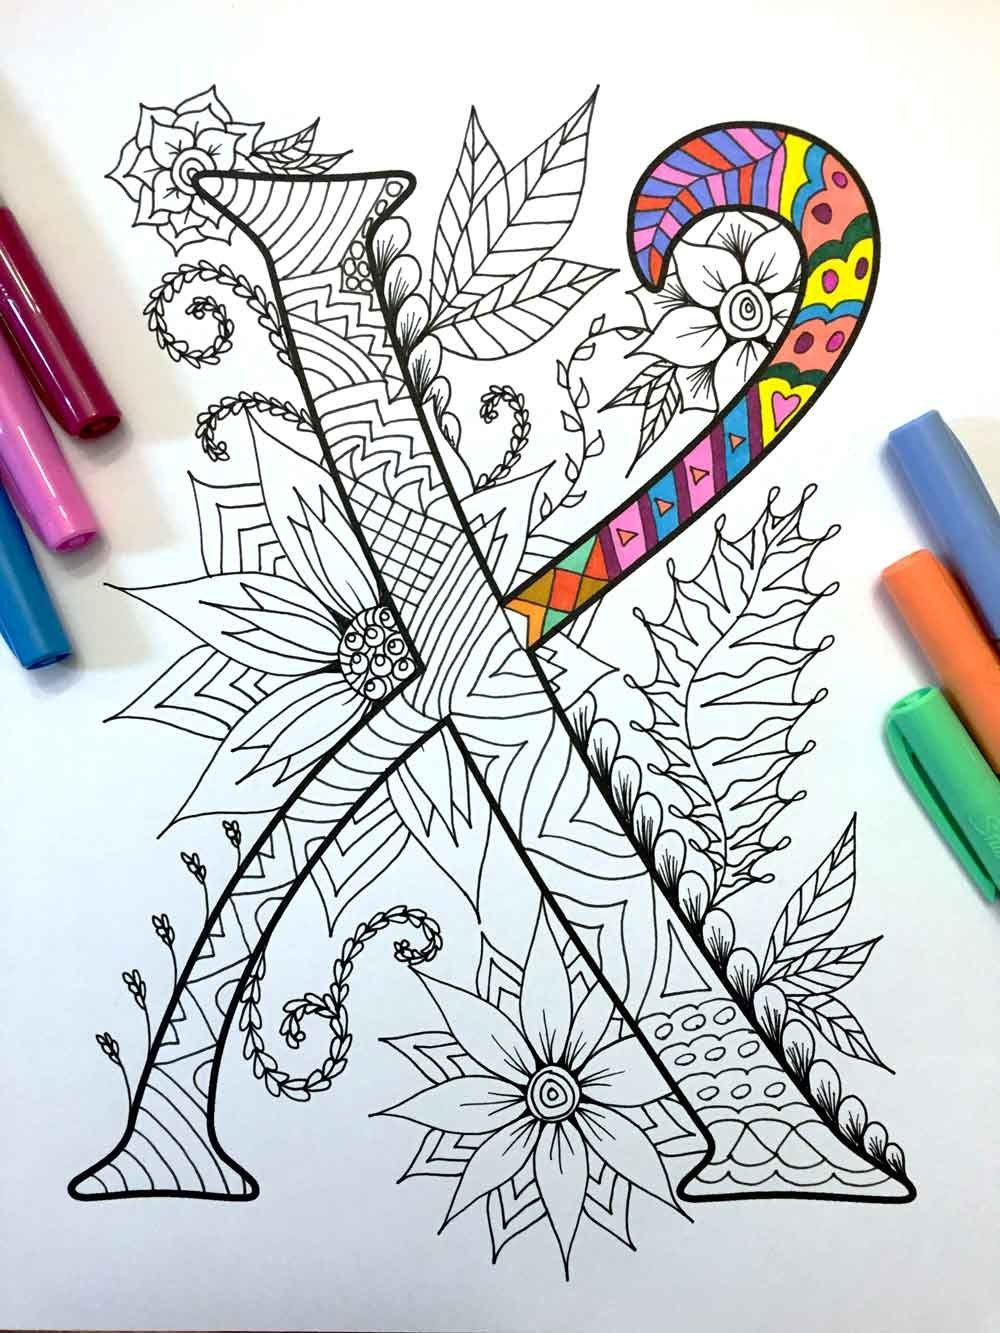 Harrington Font Printable Zentangle Alphabet Number Coloring Pages In 2020 Zentangle Patterns Coloring Pages Alphabet